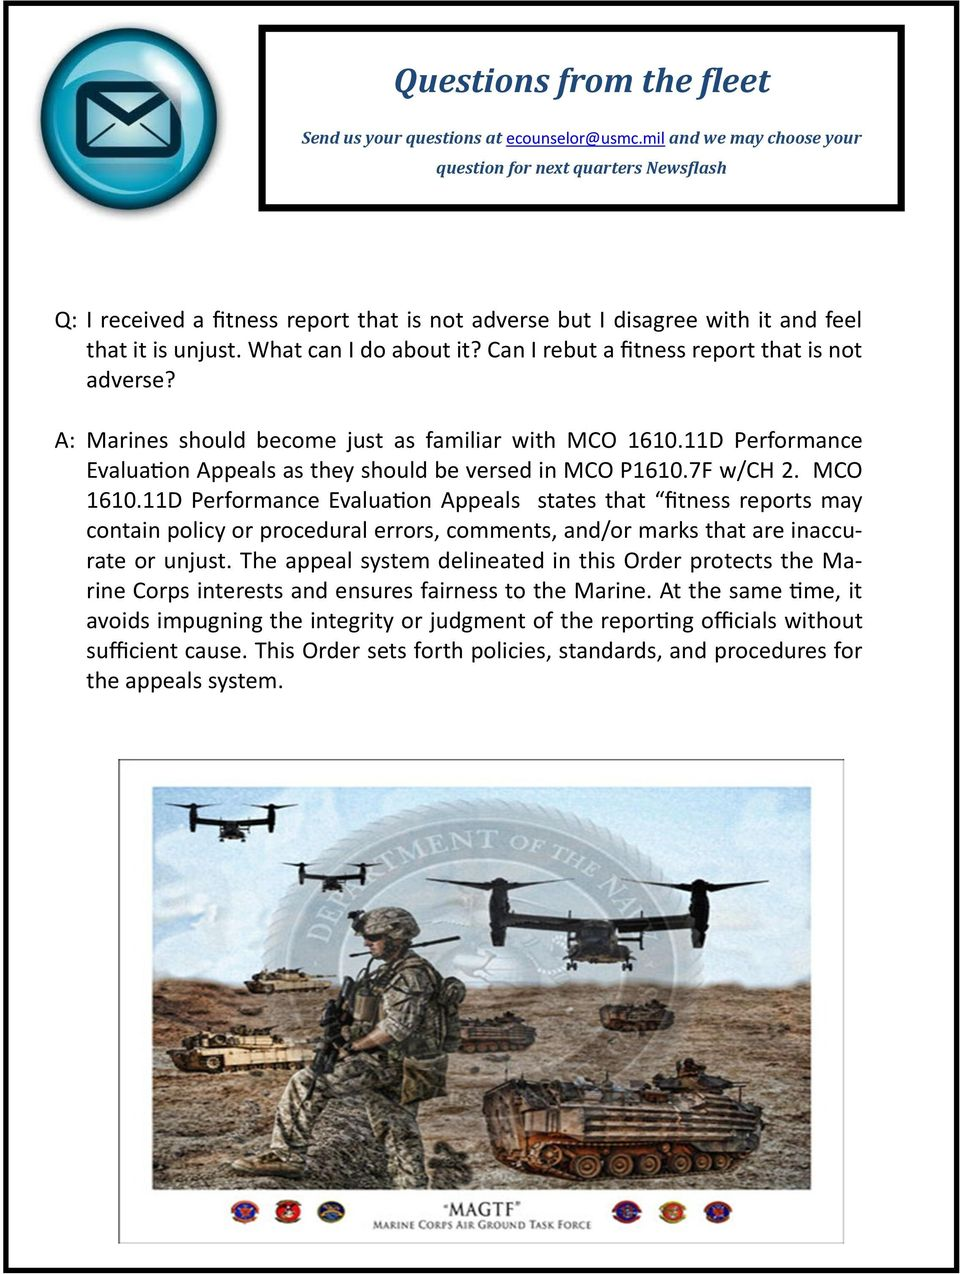 Can I rebut a fitness report that is not adverse? A: Marines should become just as familiar with MCO 1610.